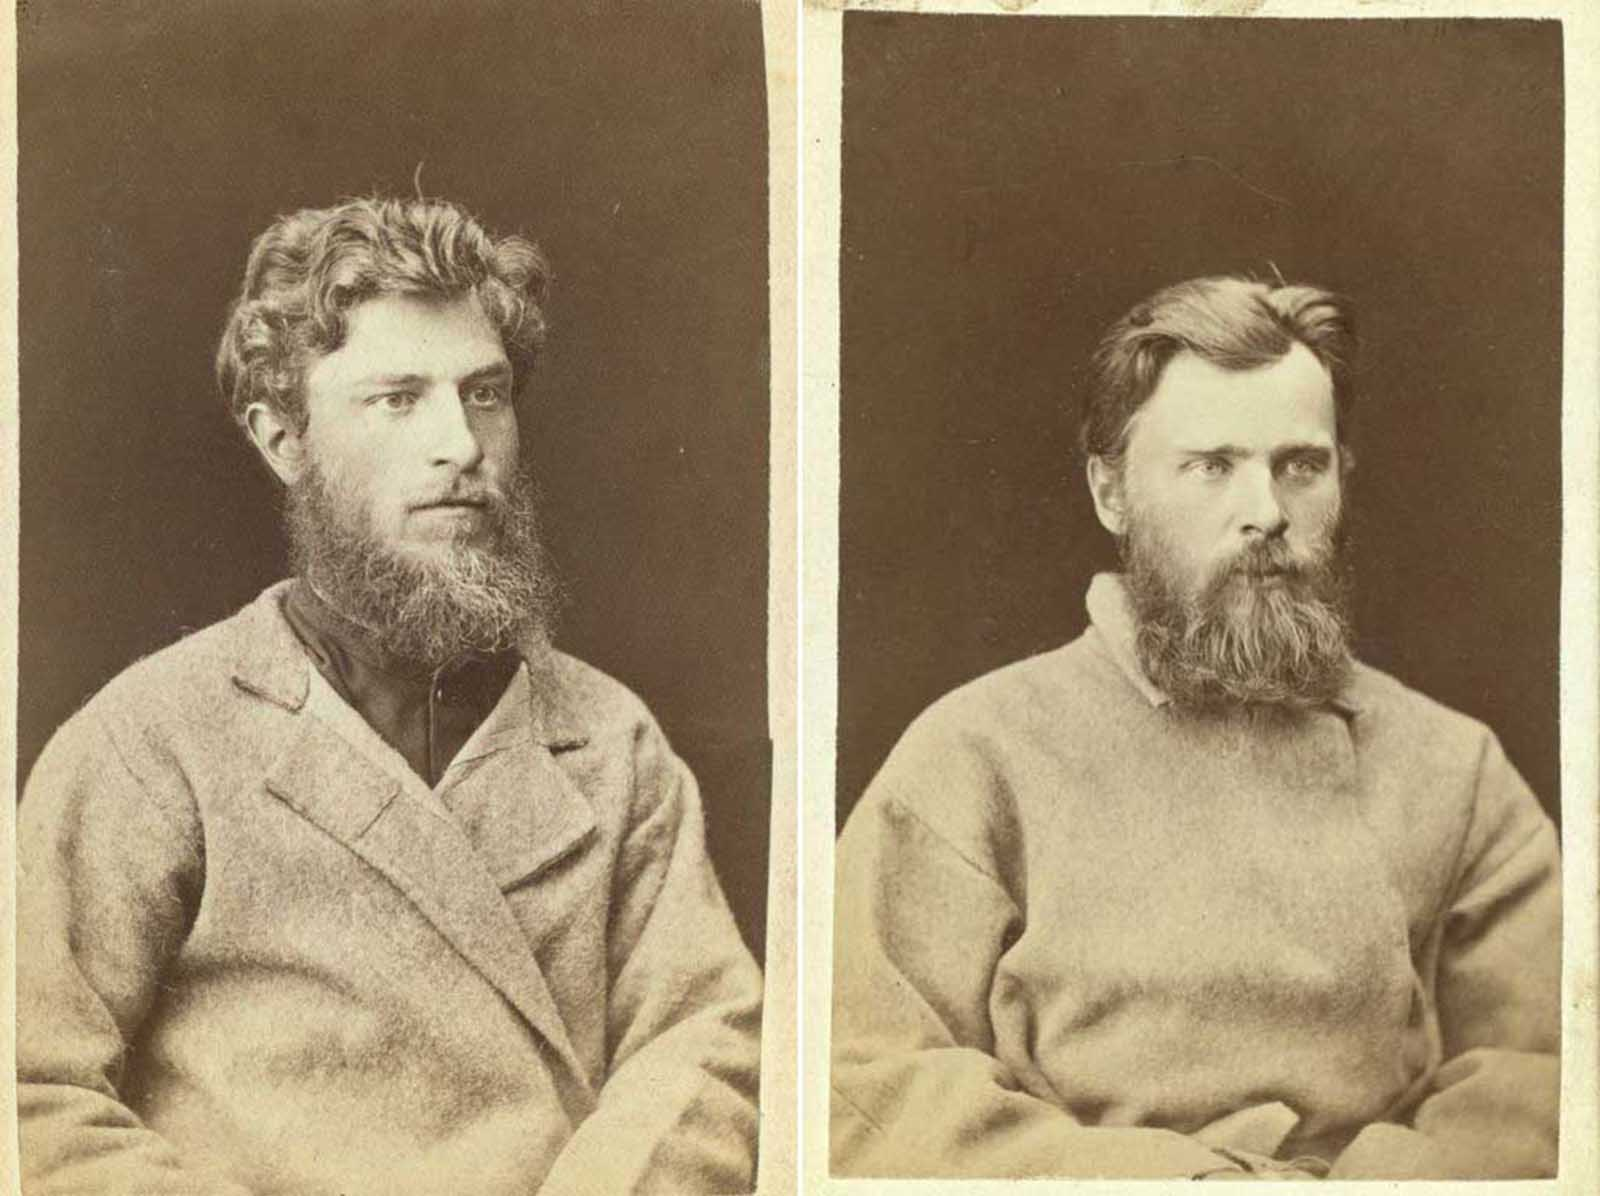 (Left) Scheffer, a prisoner at the mines of Kara. (Right) Yonof.